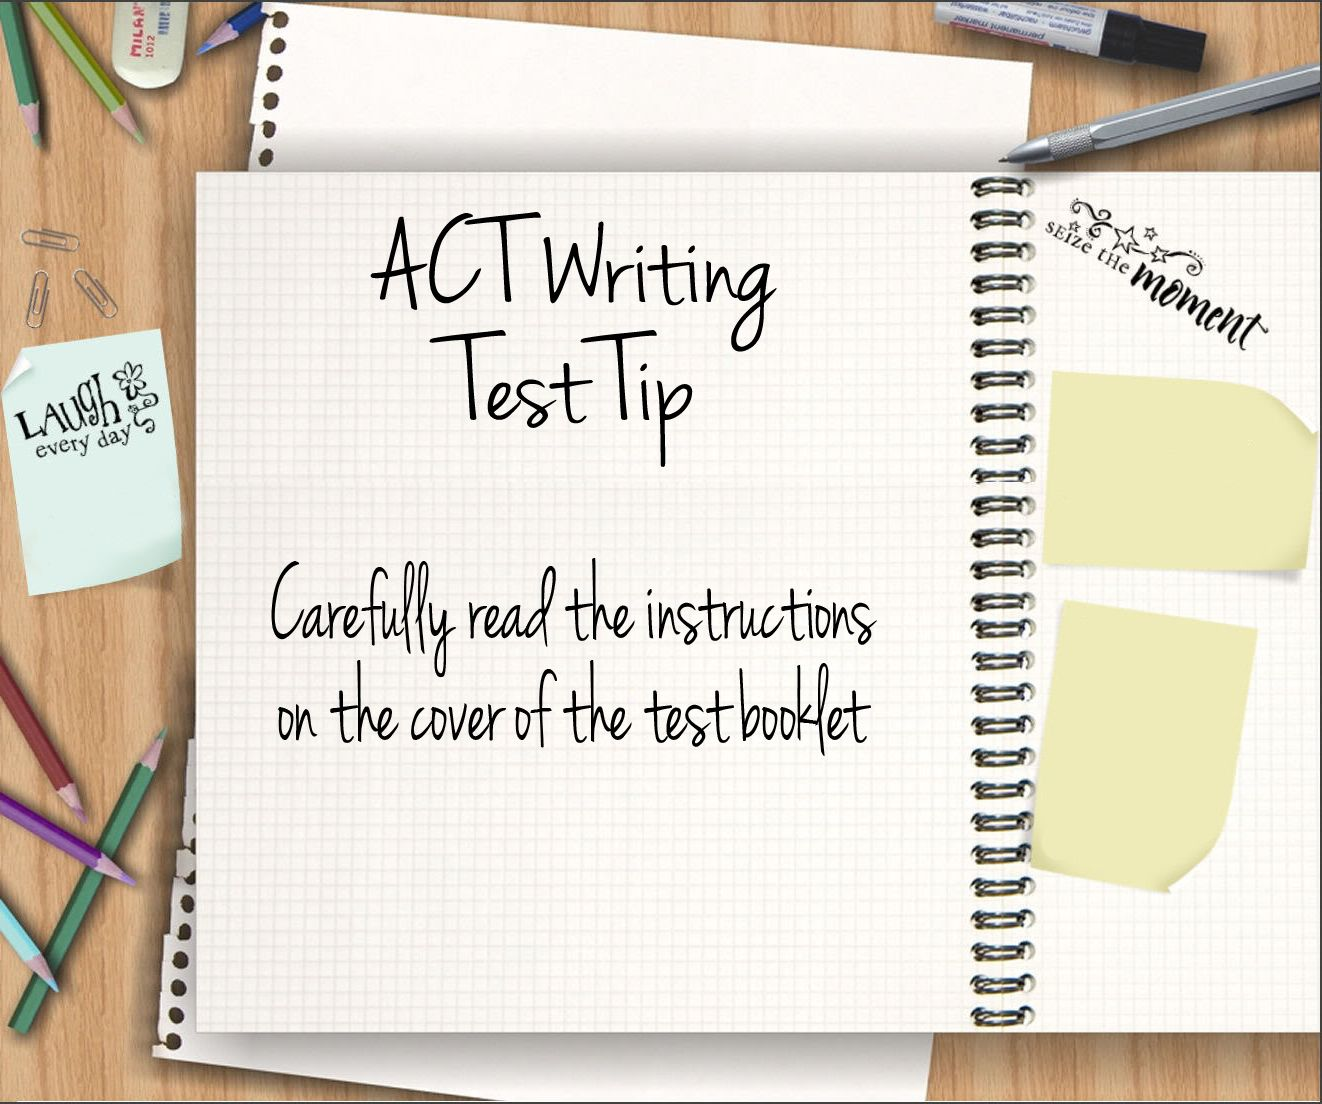 Length of ACT Writing essay a factor?